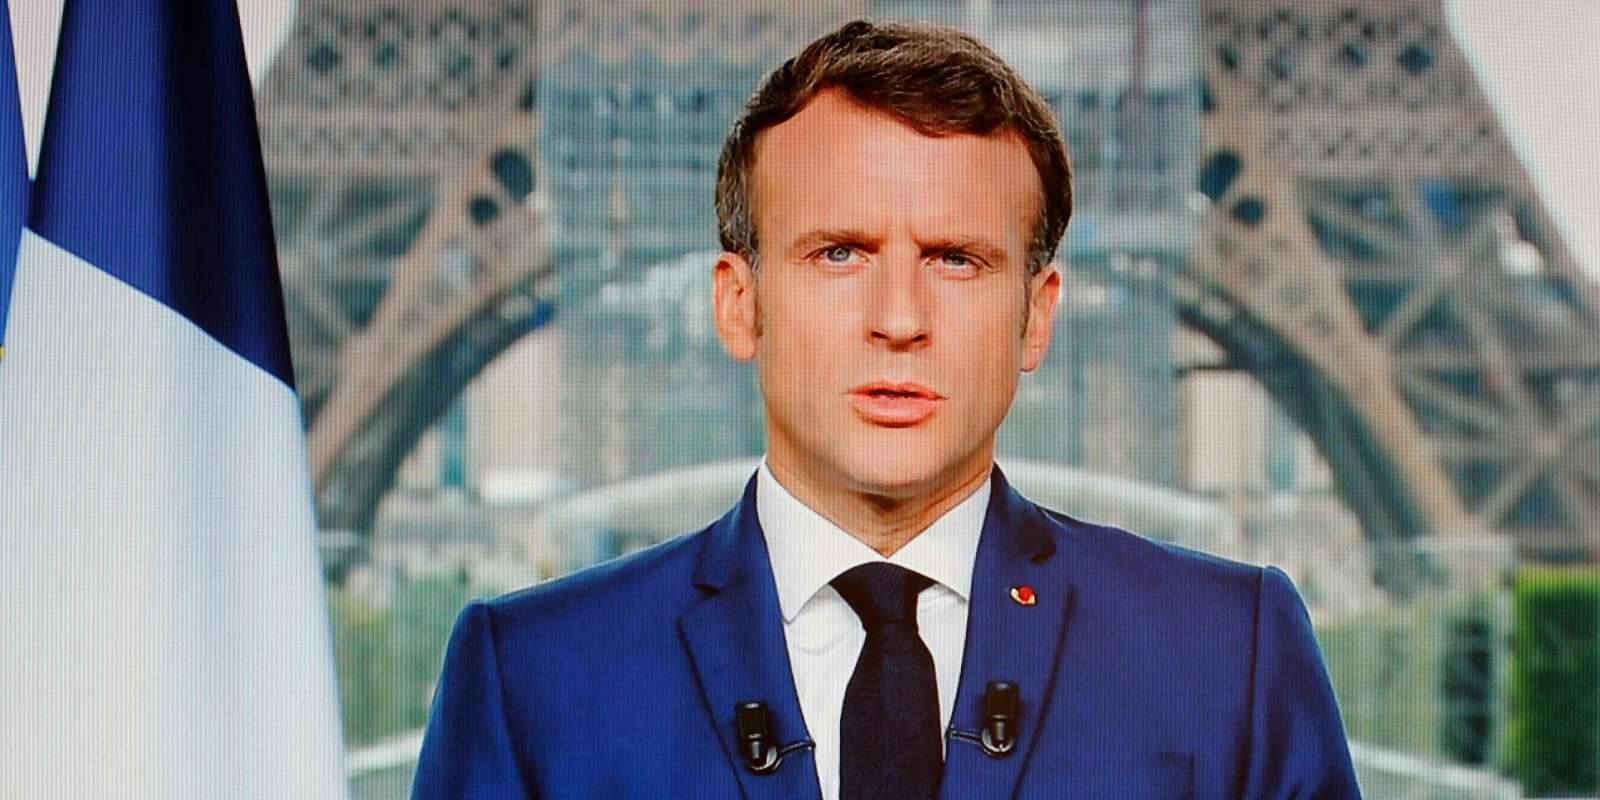 French President Emmanuel Macron is seen on a TV screen as he speaks during a televised address to the nation from the temporary Grand Palais in Paris on July 12, 2021. / AFP / Ludovic MARIN